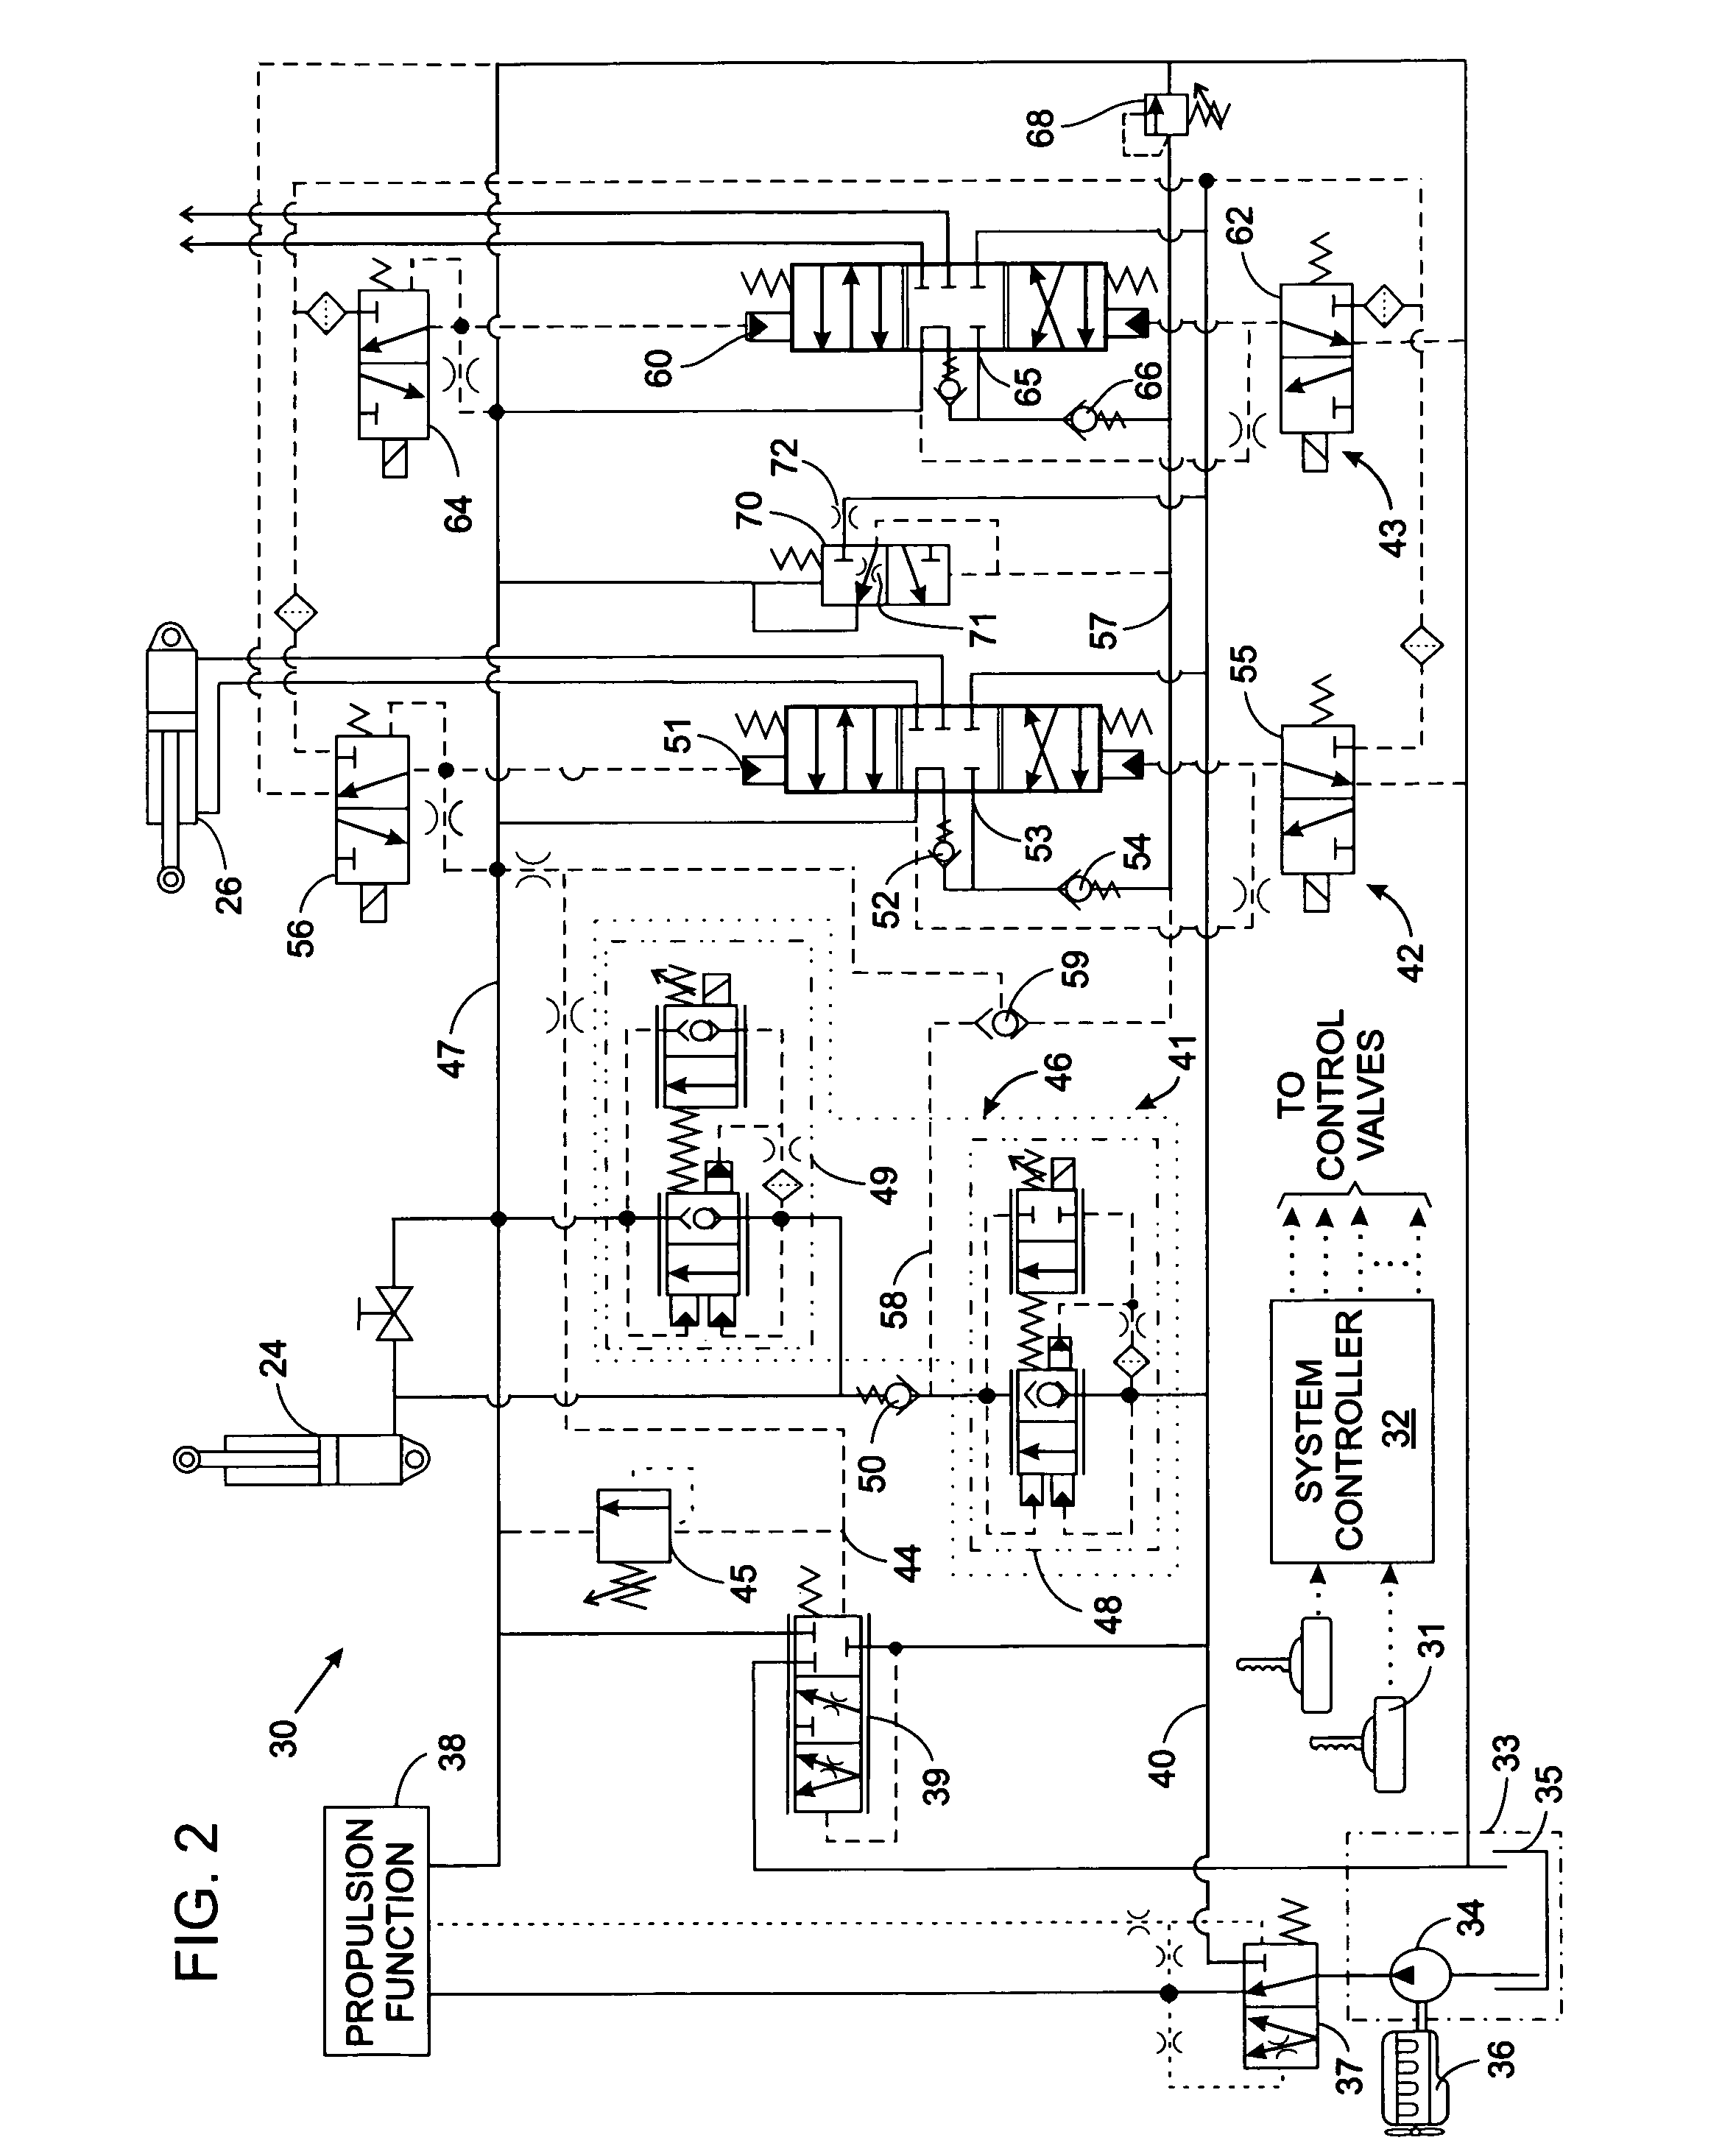 engine hydraulic system diagram  parts  auto parts catalog